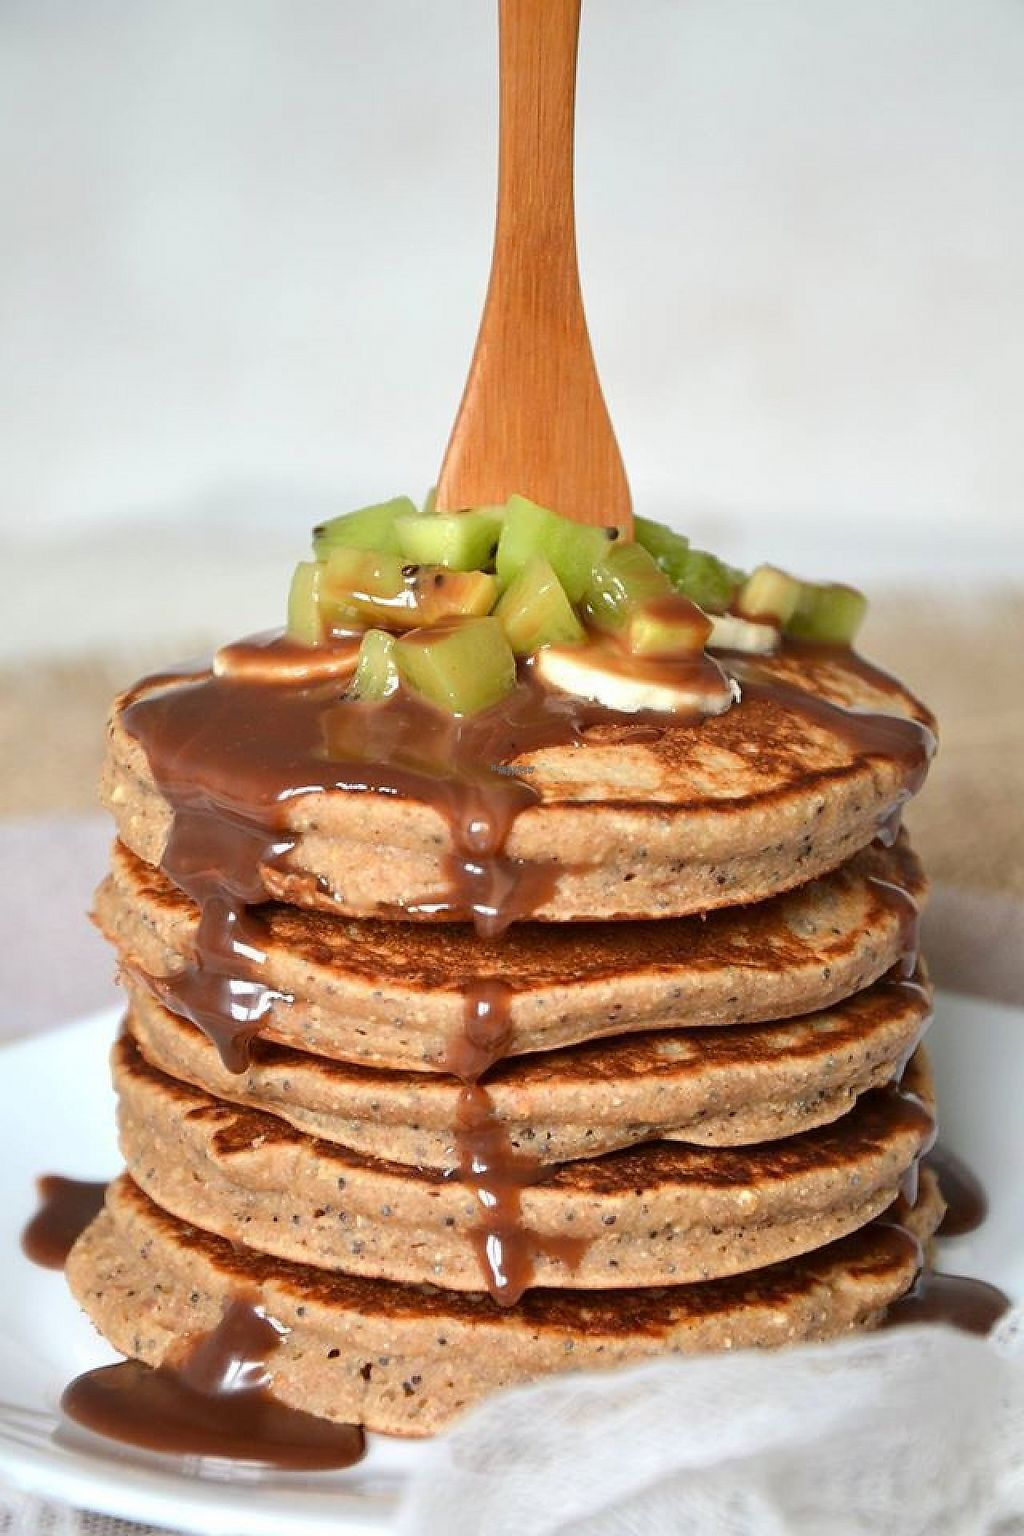 """Photo of La Vie Claire  by <a href=""""/members/profile/community"""">community</a> <br/>vegan pancakes  <br/> February 4, 2017  - <a href='/contact/abuse/image/68797/221841'>Report</a>"""